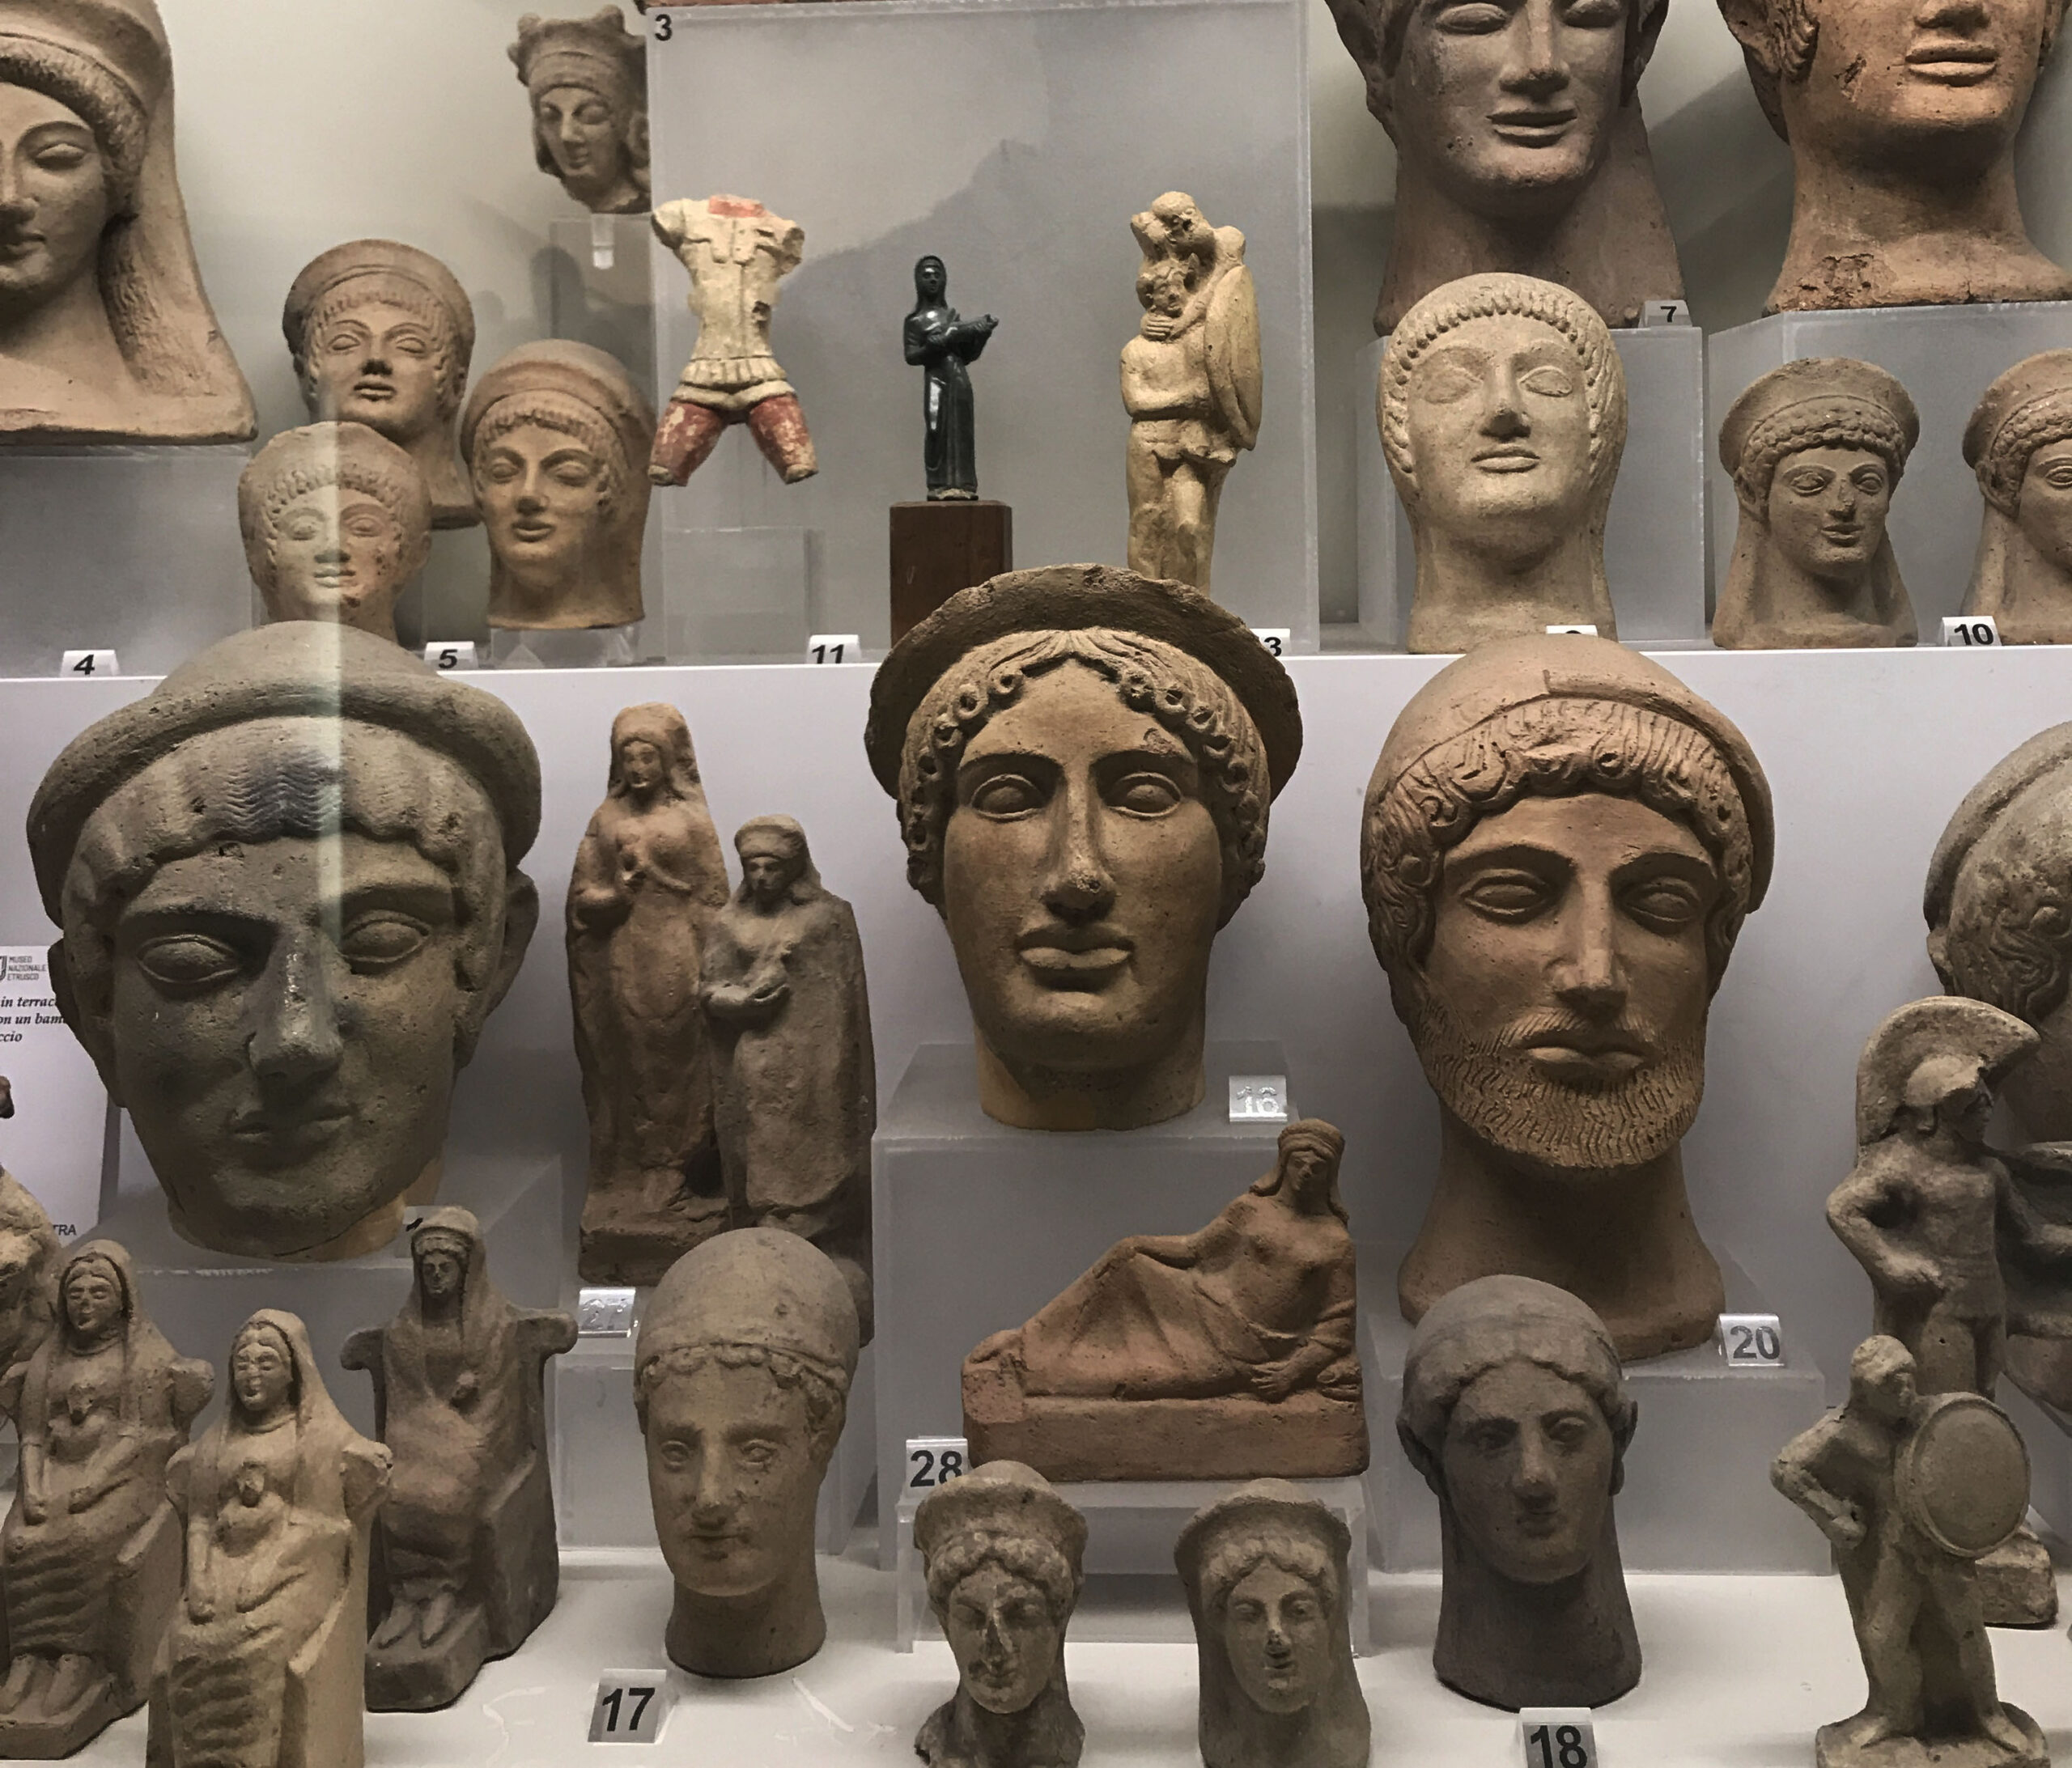 Discovering the Etruscans